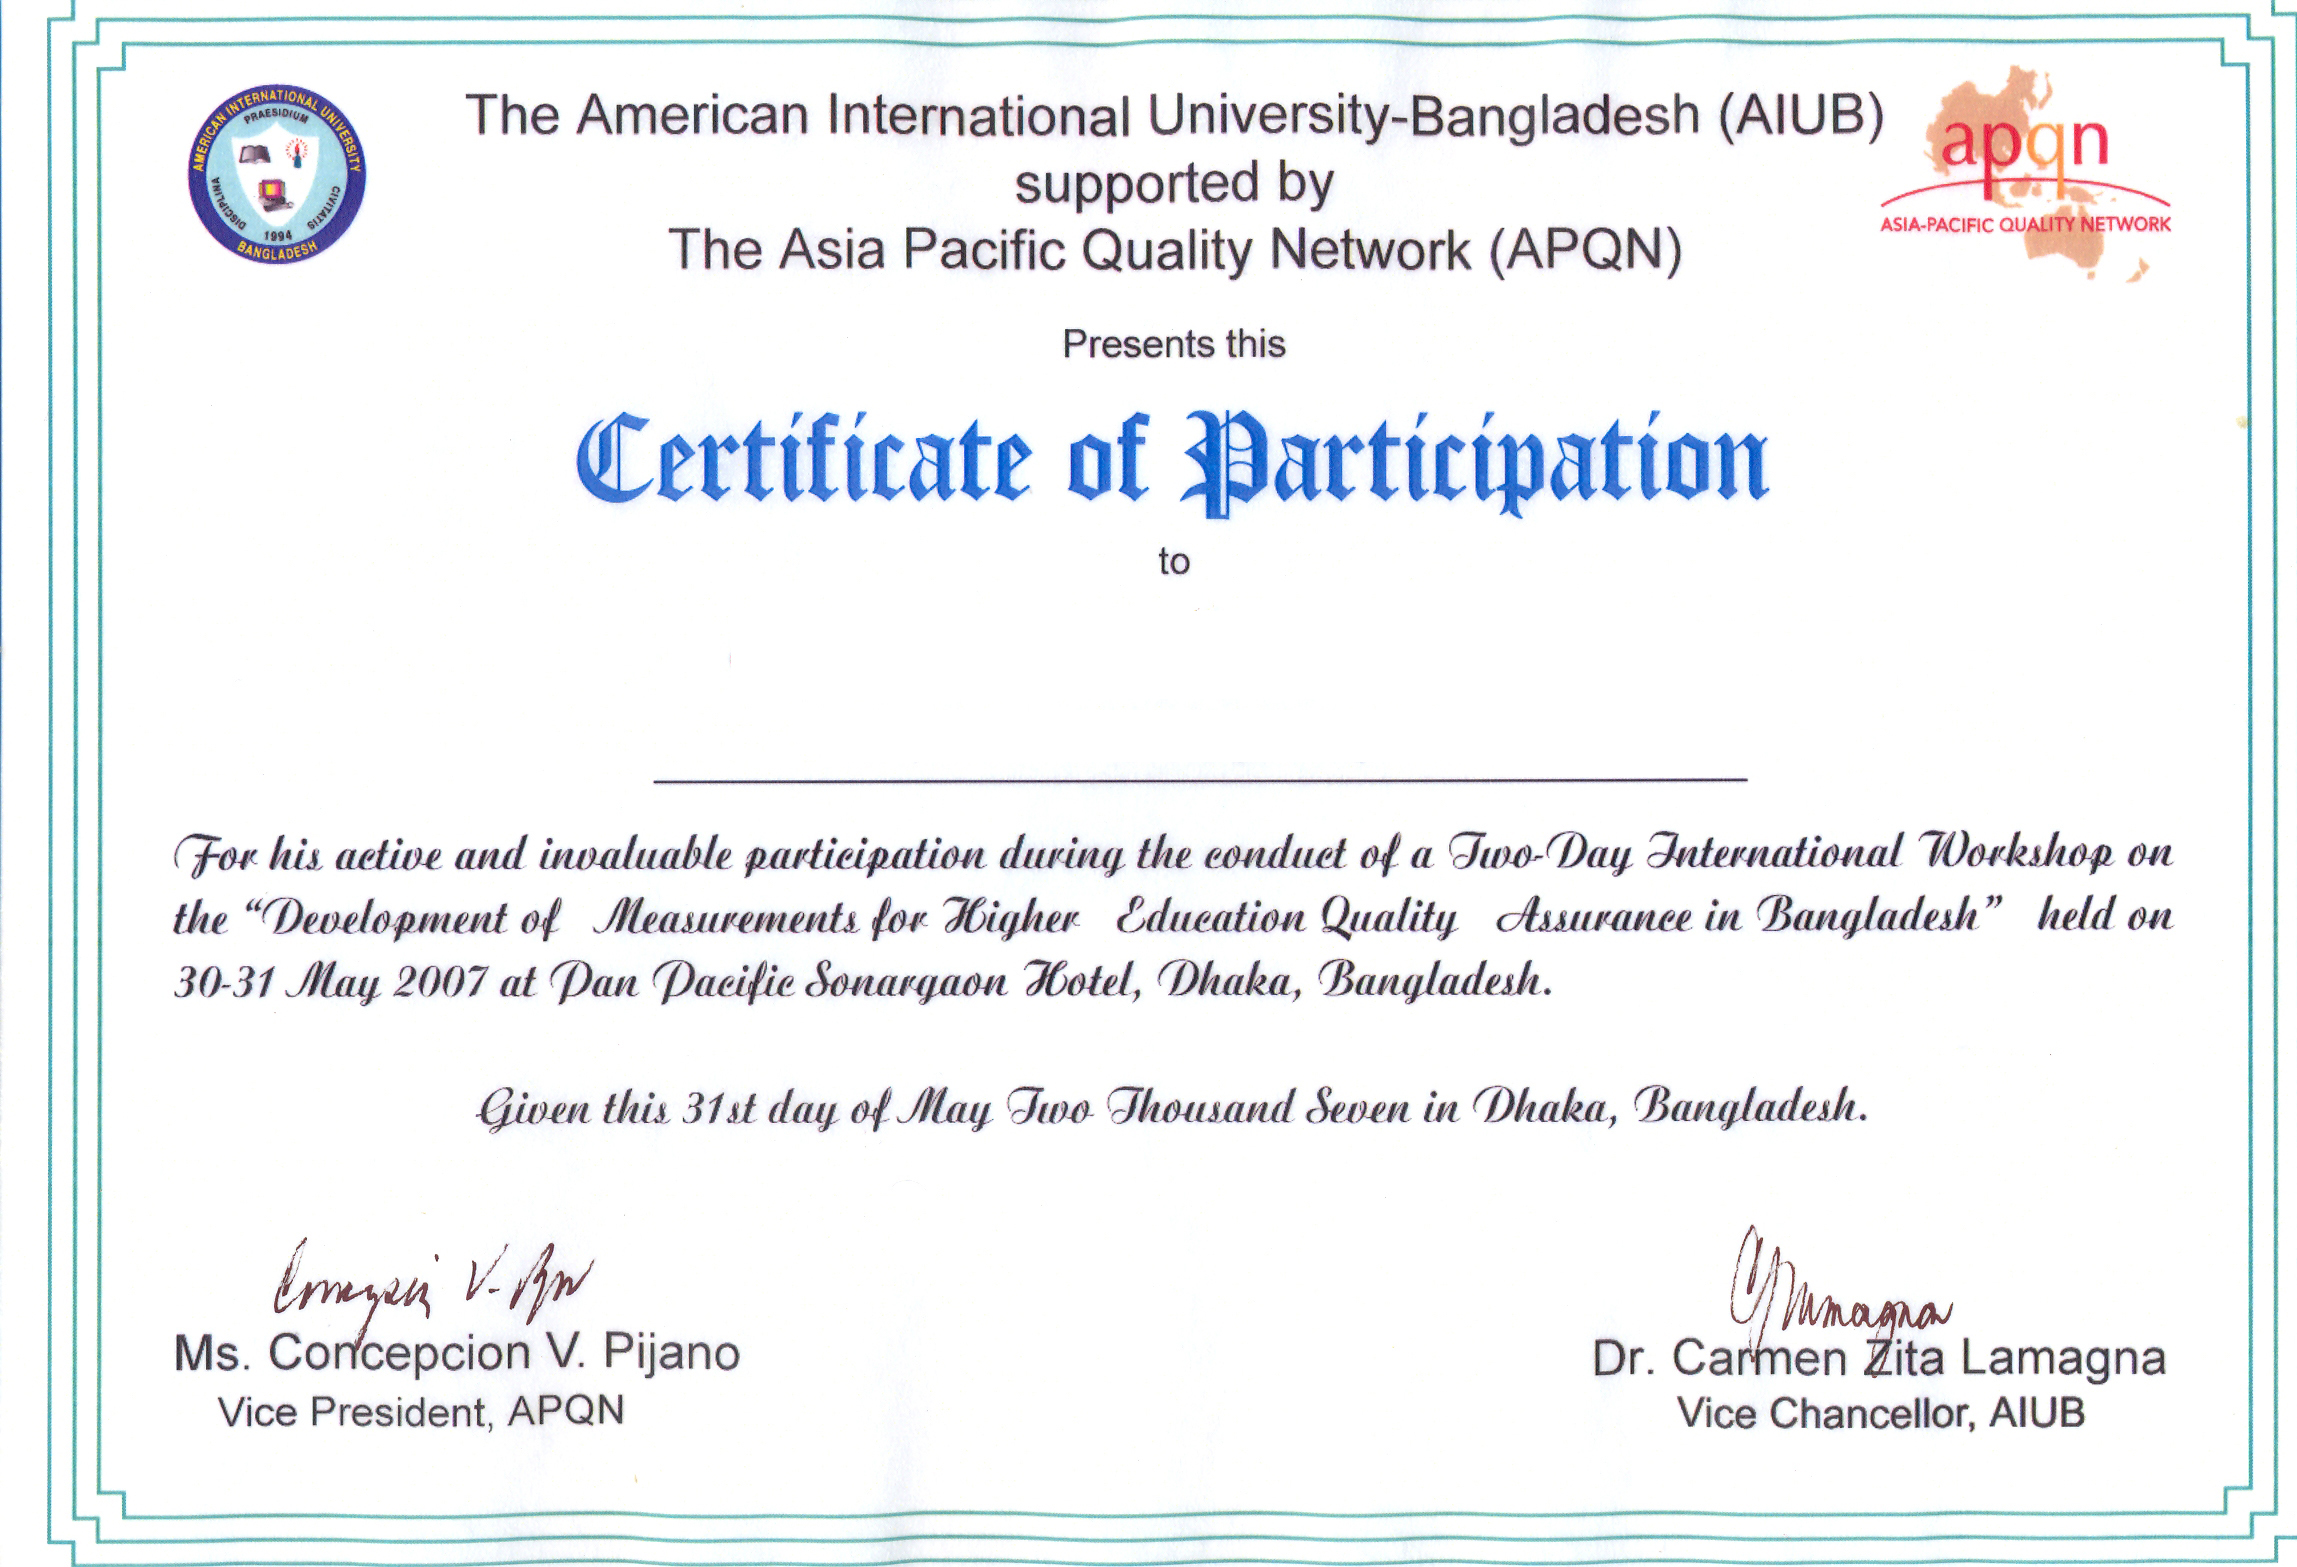 Aiub and apqn jointly organized international workshop for Template for certificate of participation in workshop